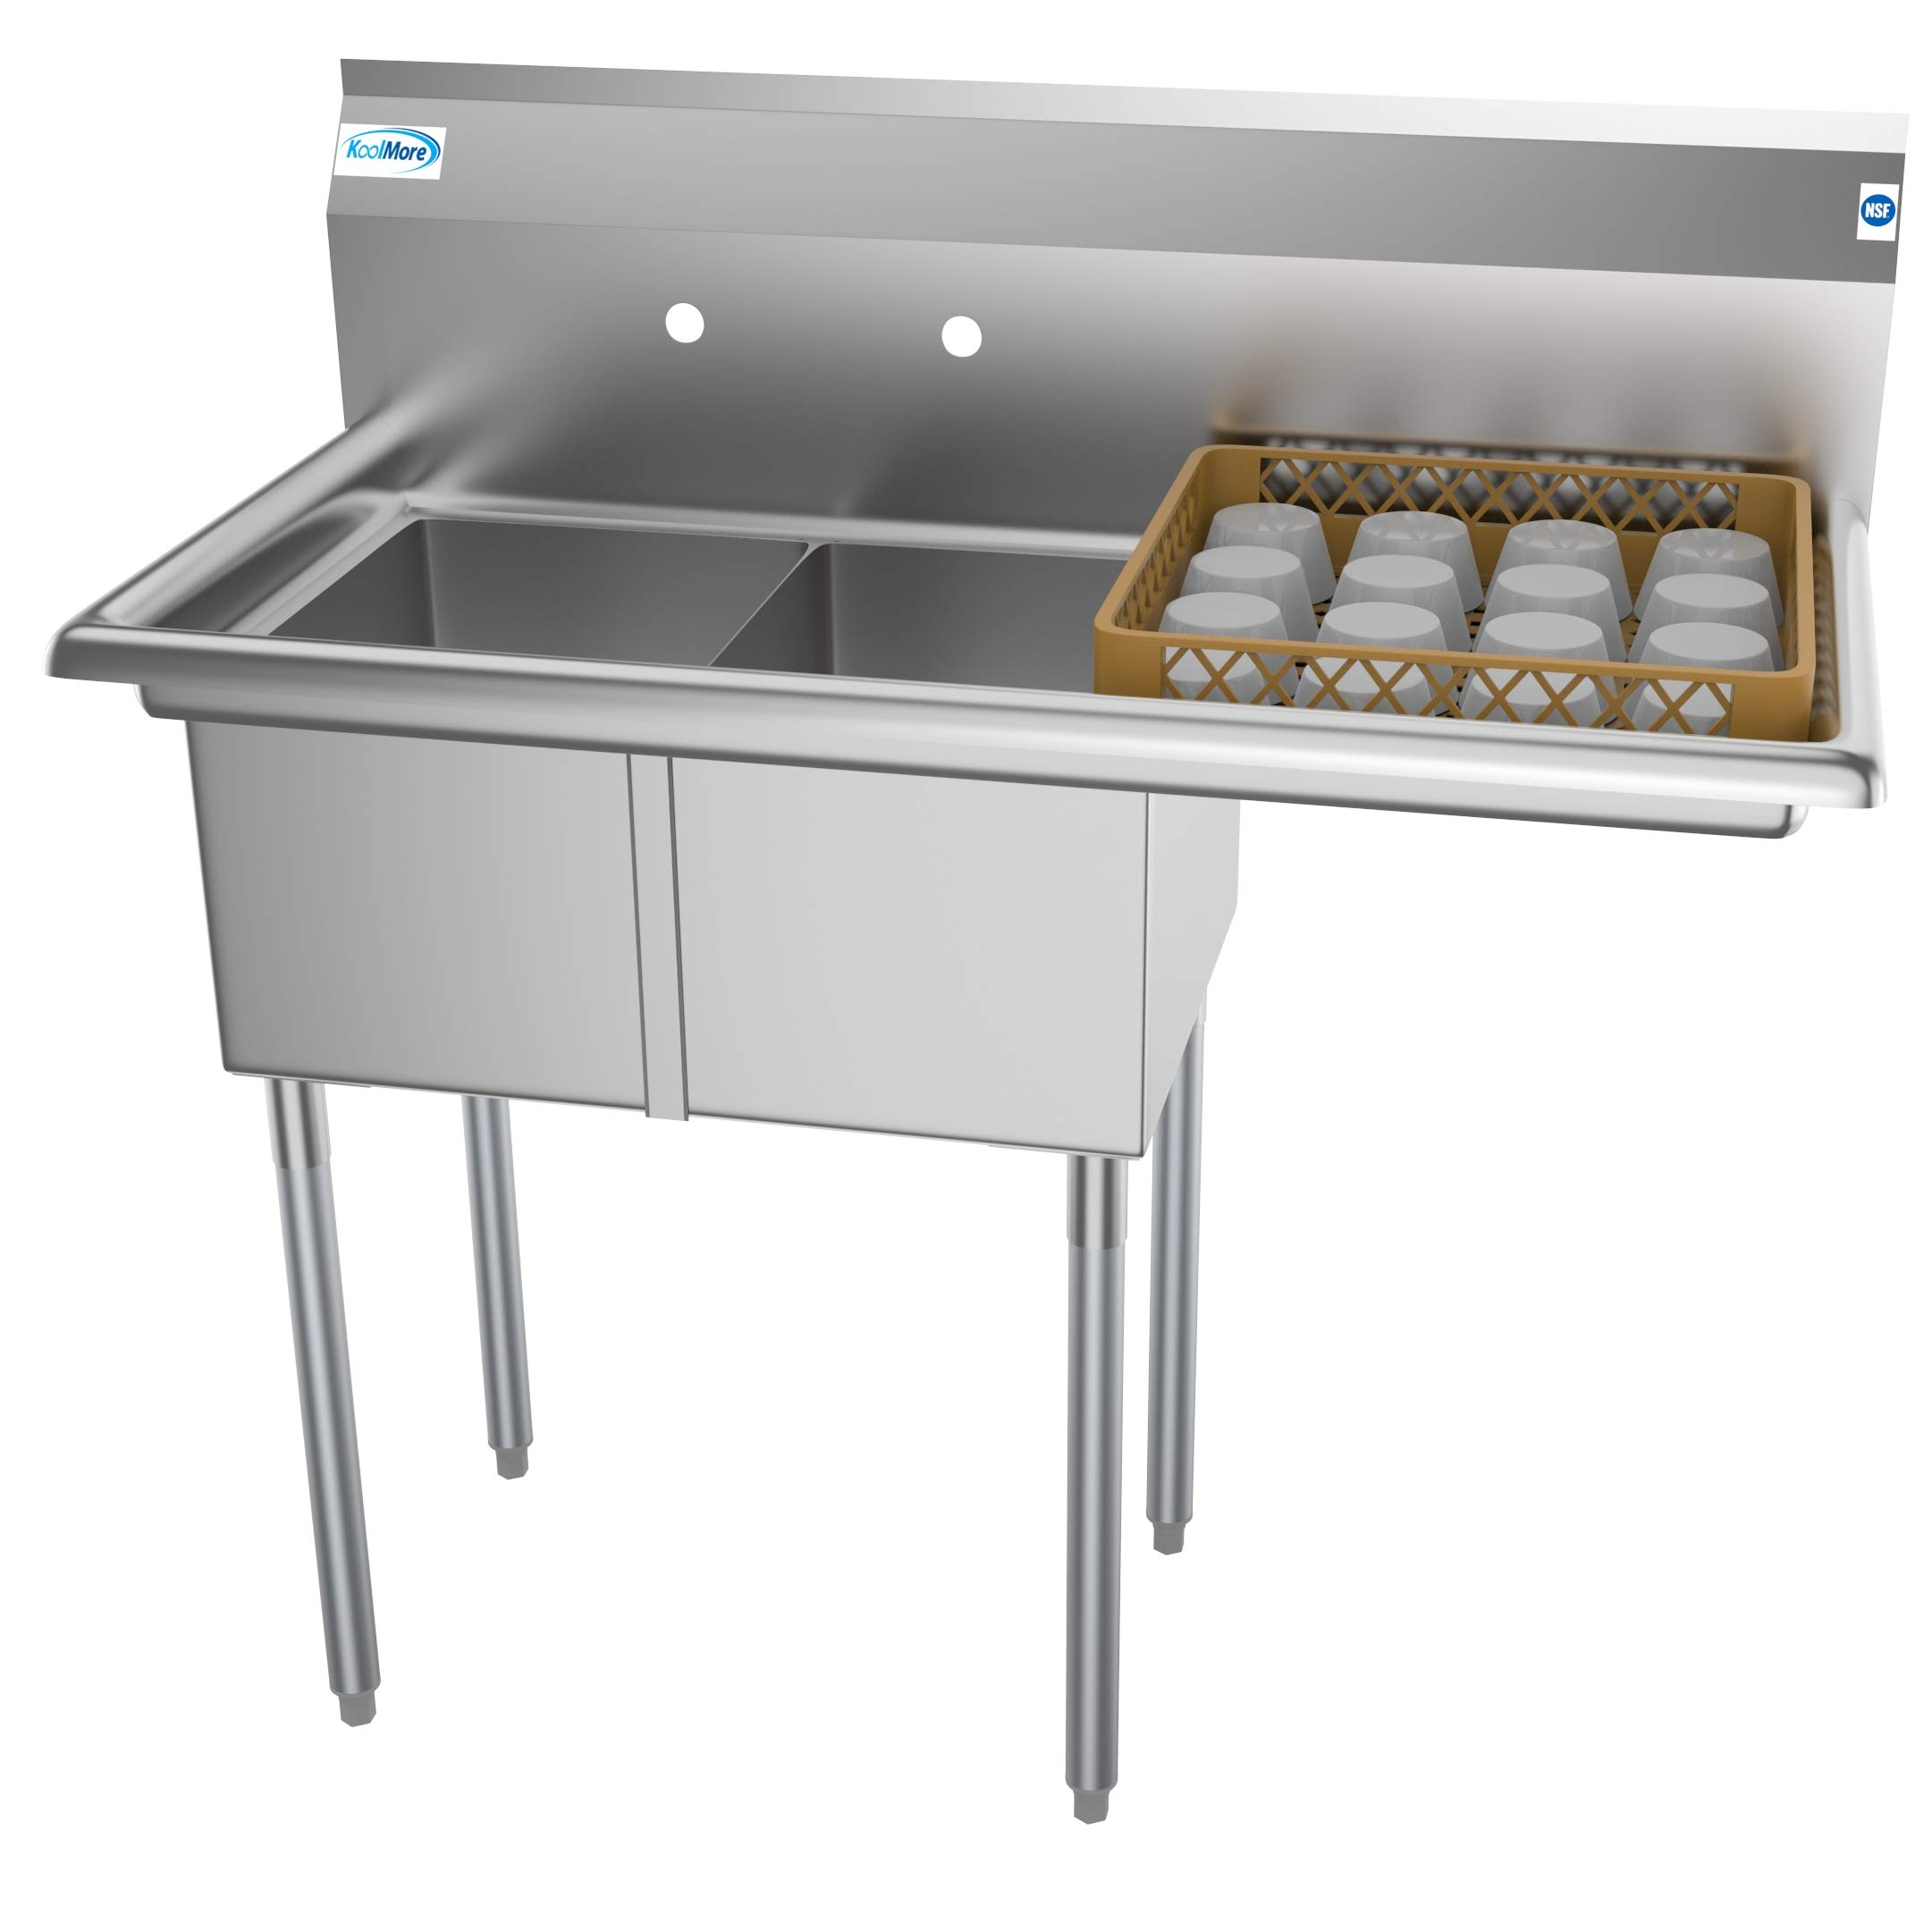 KoolMore 2 Compartment Stainless Steel NSF Commercial Kitchen Prep & Utility Sink with Drainboard - Bowl Size 12'' x 16'' x 10'', Silver